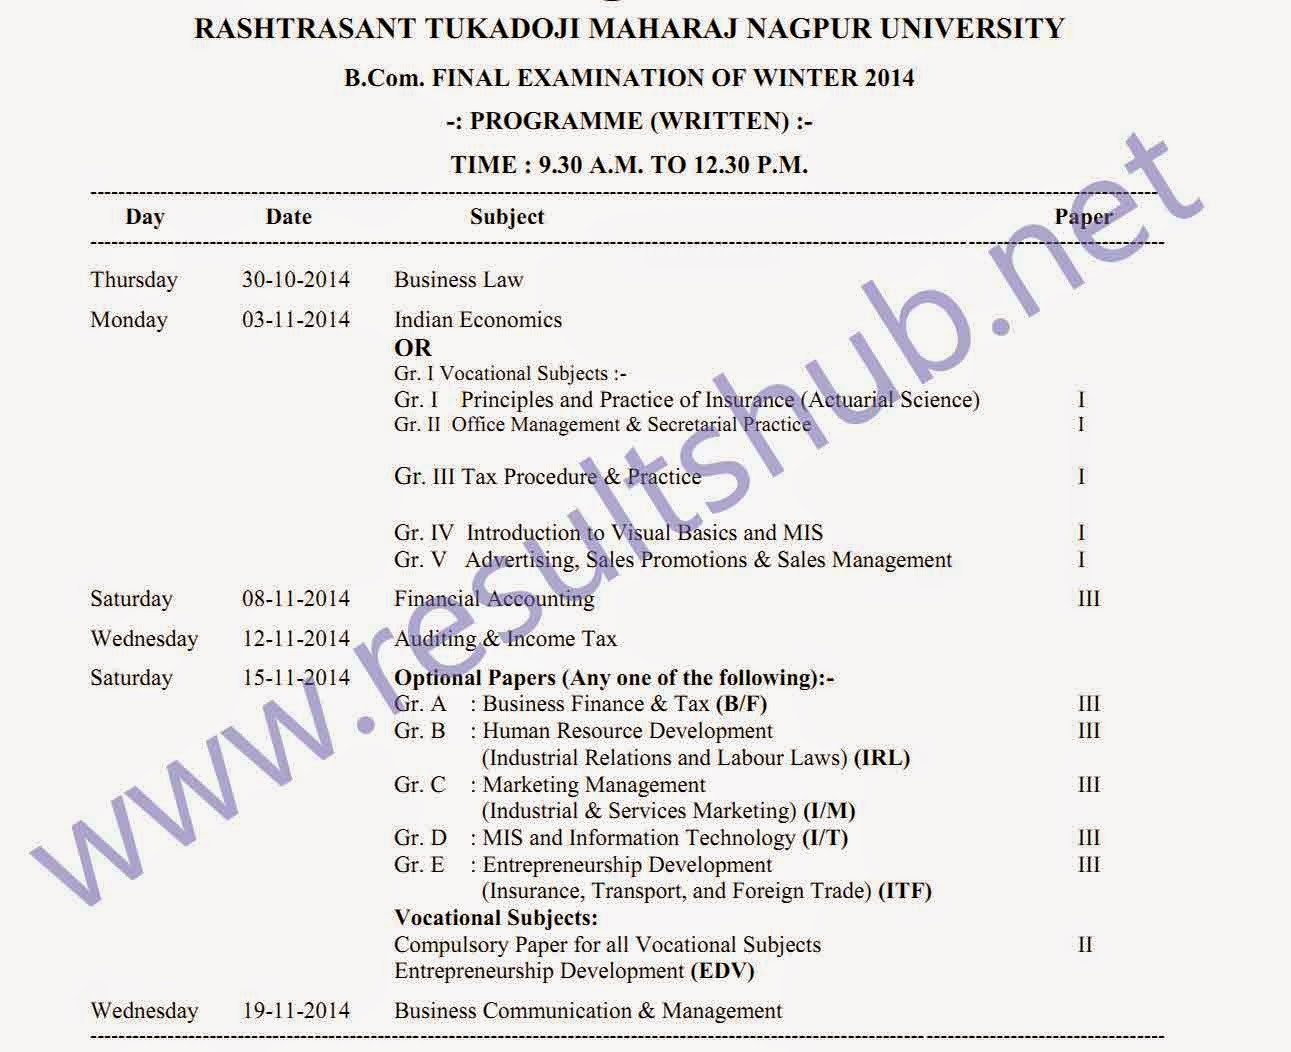 RTMNU BCom Final Year Winter 2014 Timetable